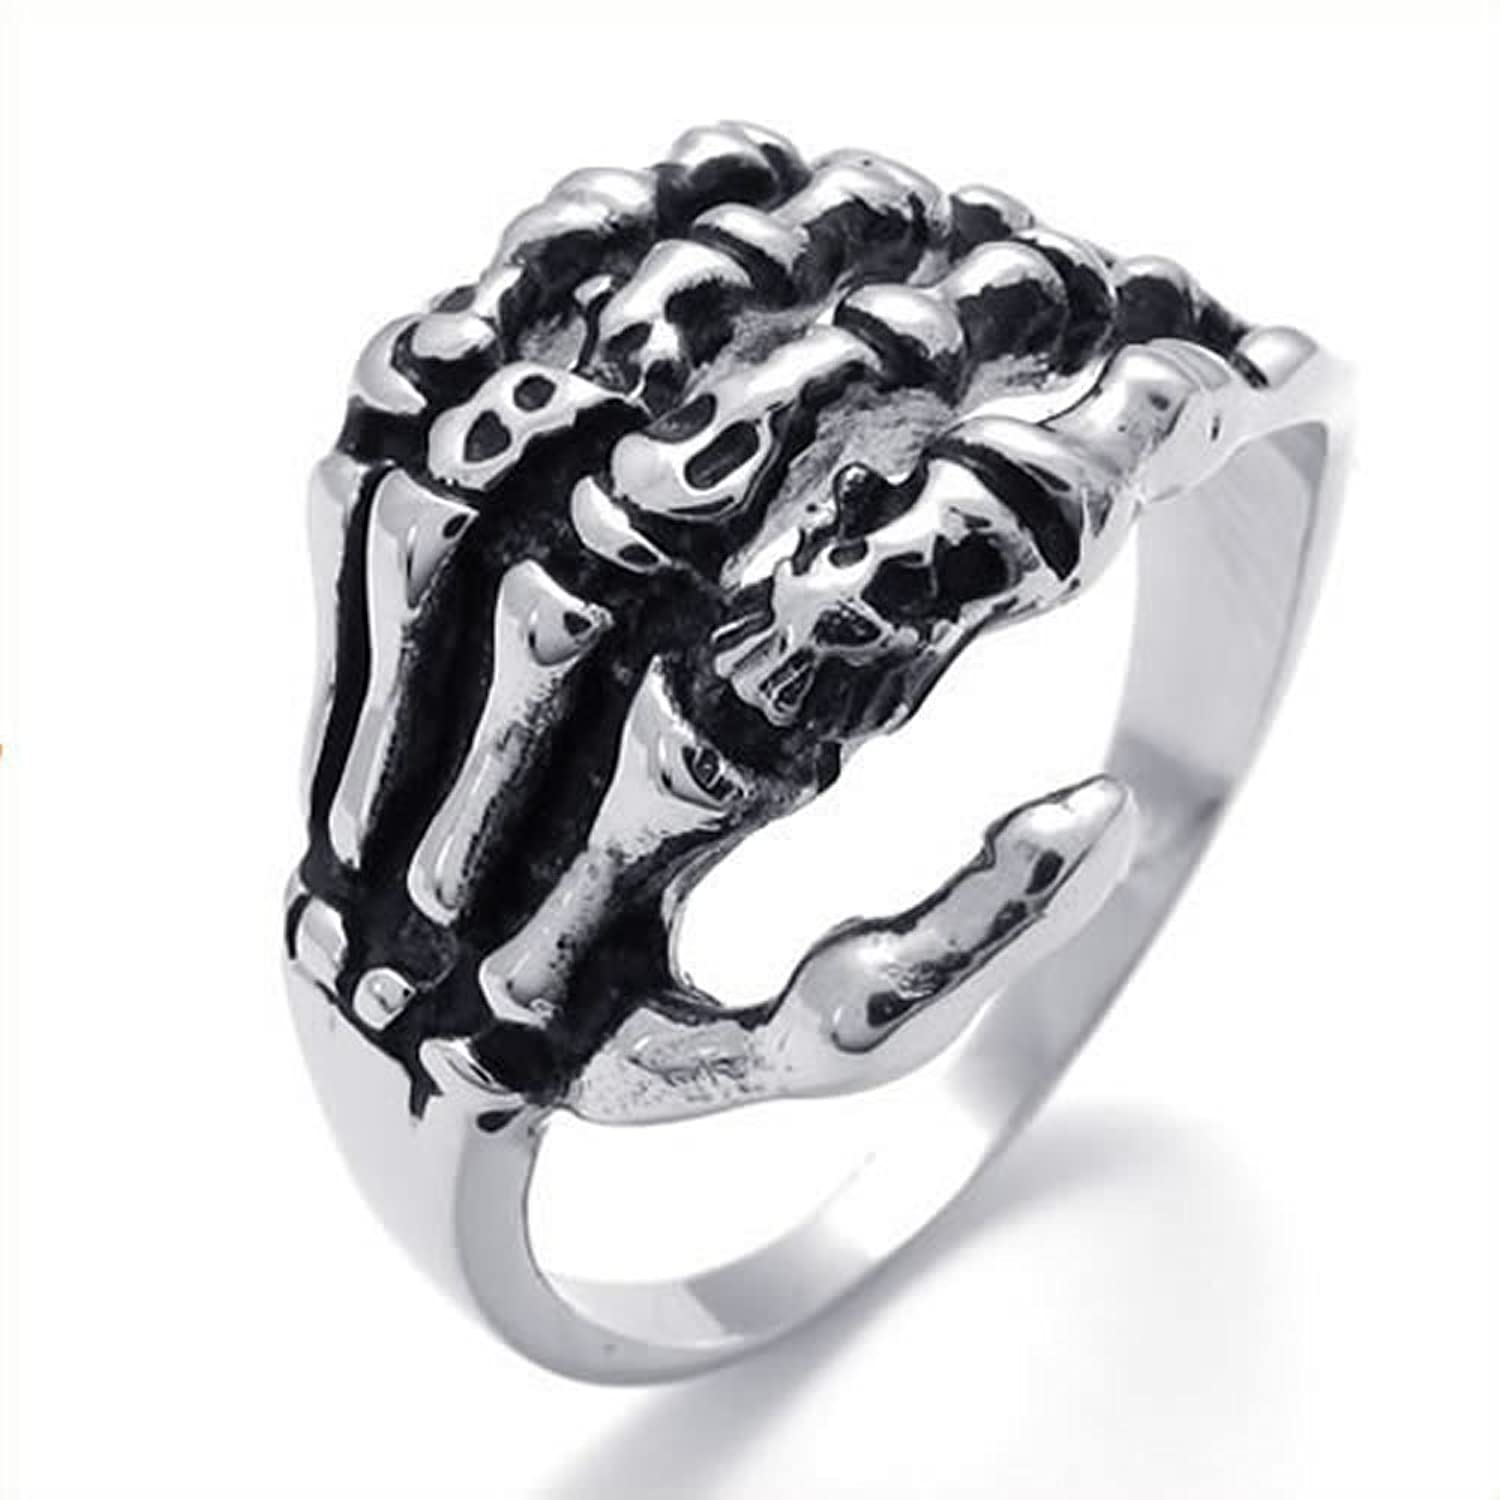 band uk bone rings ring skeleton steel dp skull co stainless black jewellery munkimix men hand silver amazon tone